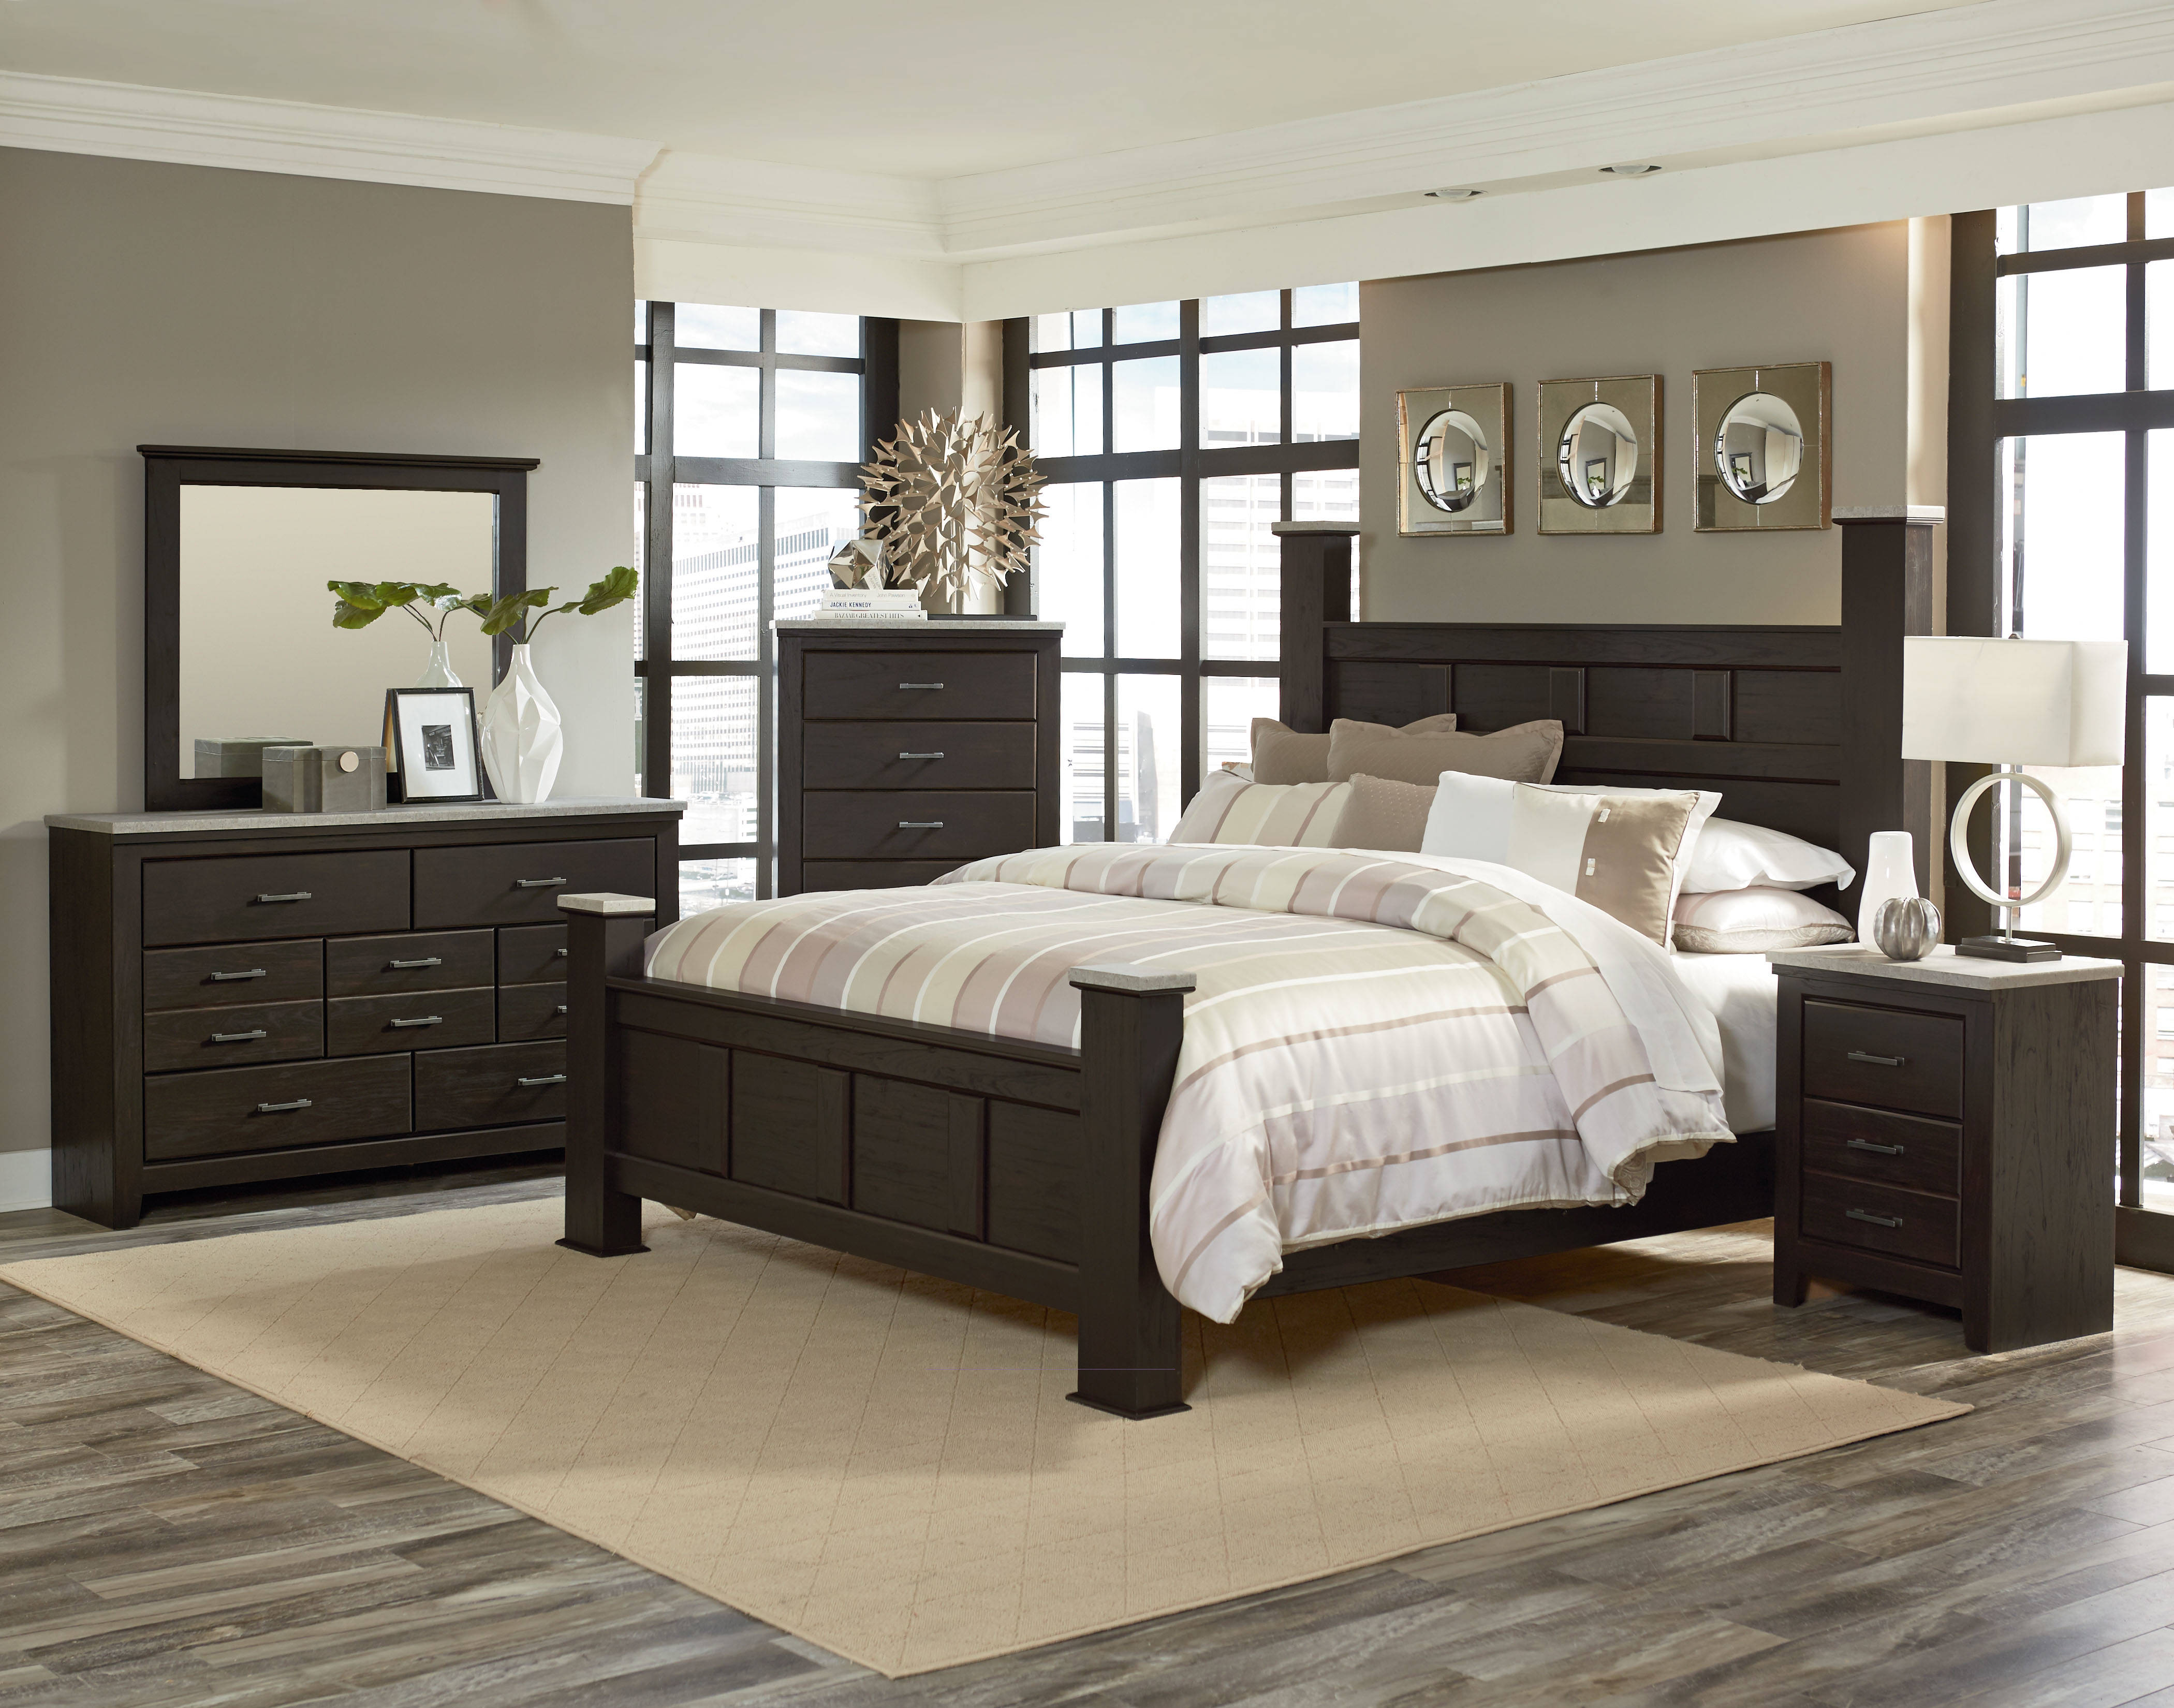 Standard furniture stonehill brown 2pc bedroom set with for Bedroom sets with mattress